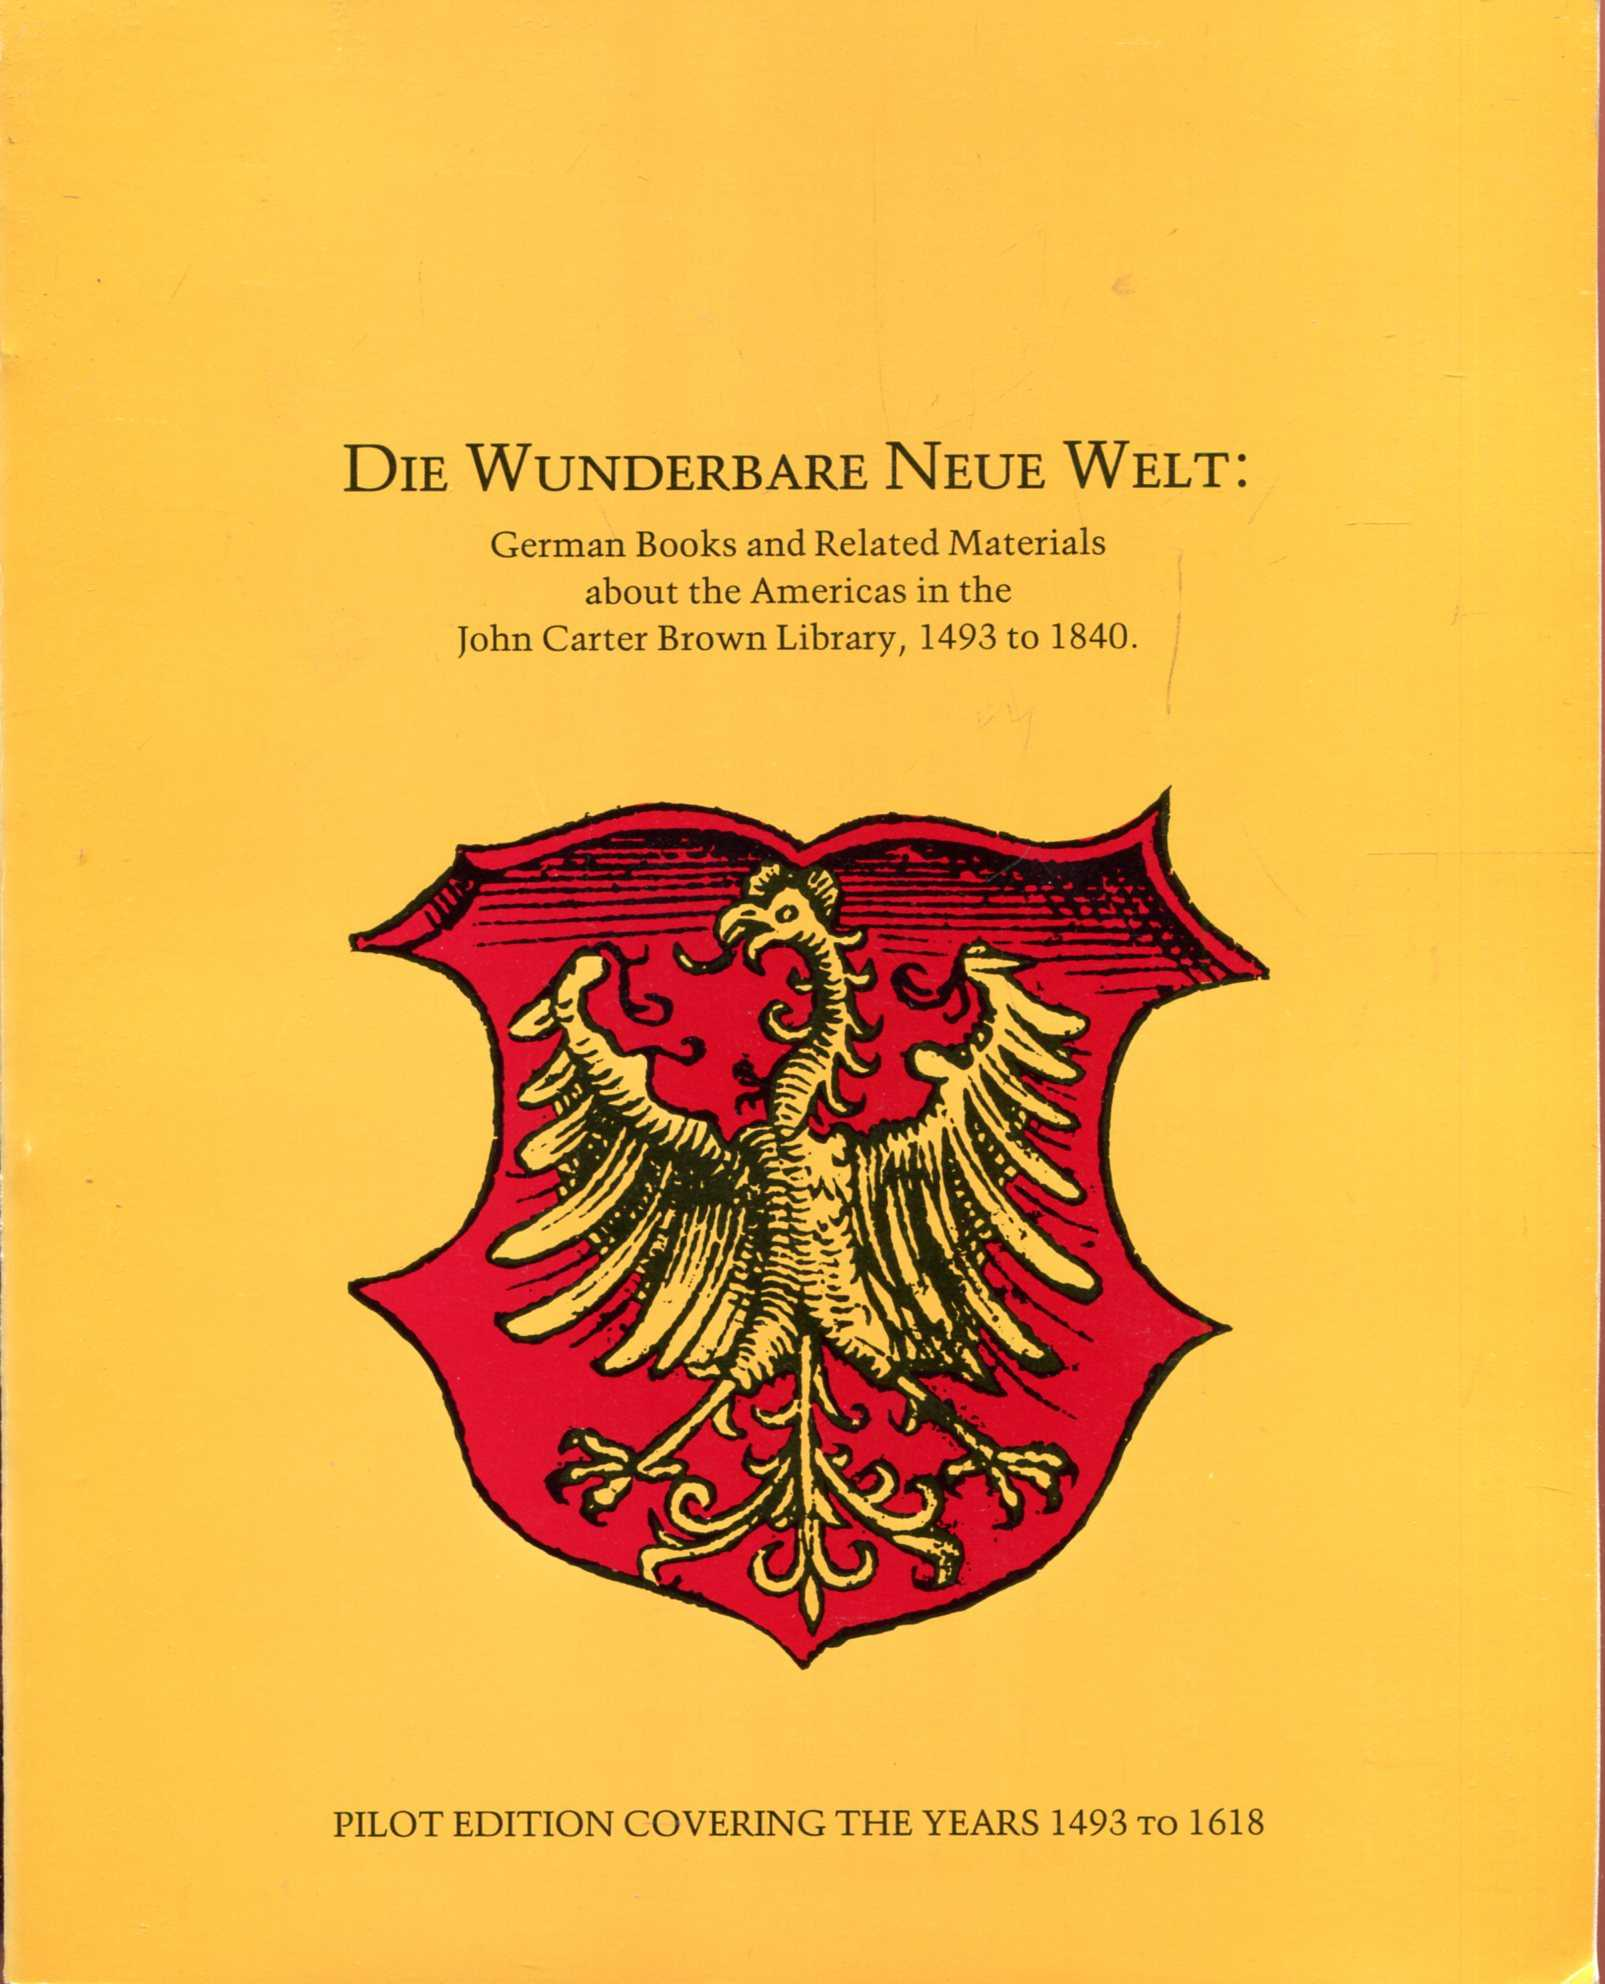 Image for Der Wunderbare Neue Welt : German Books about the Americas in the John Carter Brown Library 1493 to 1840 : Pilot ediition covering the tears 1493 to 1618